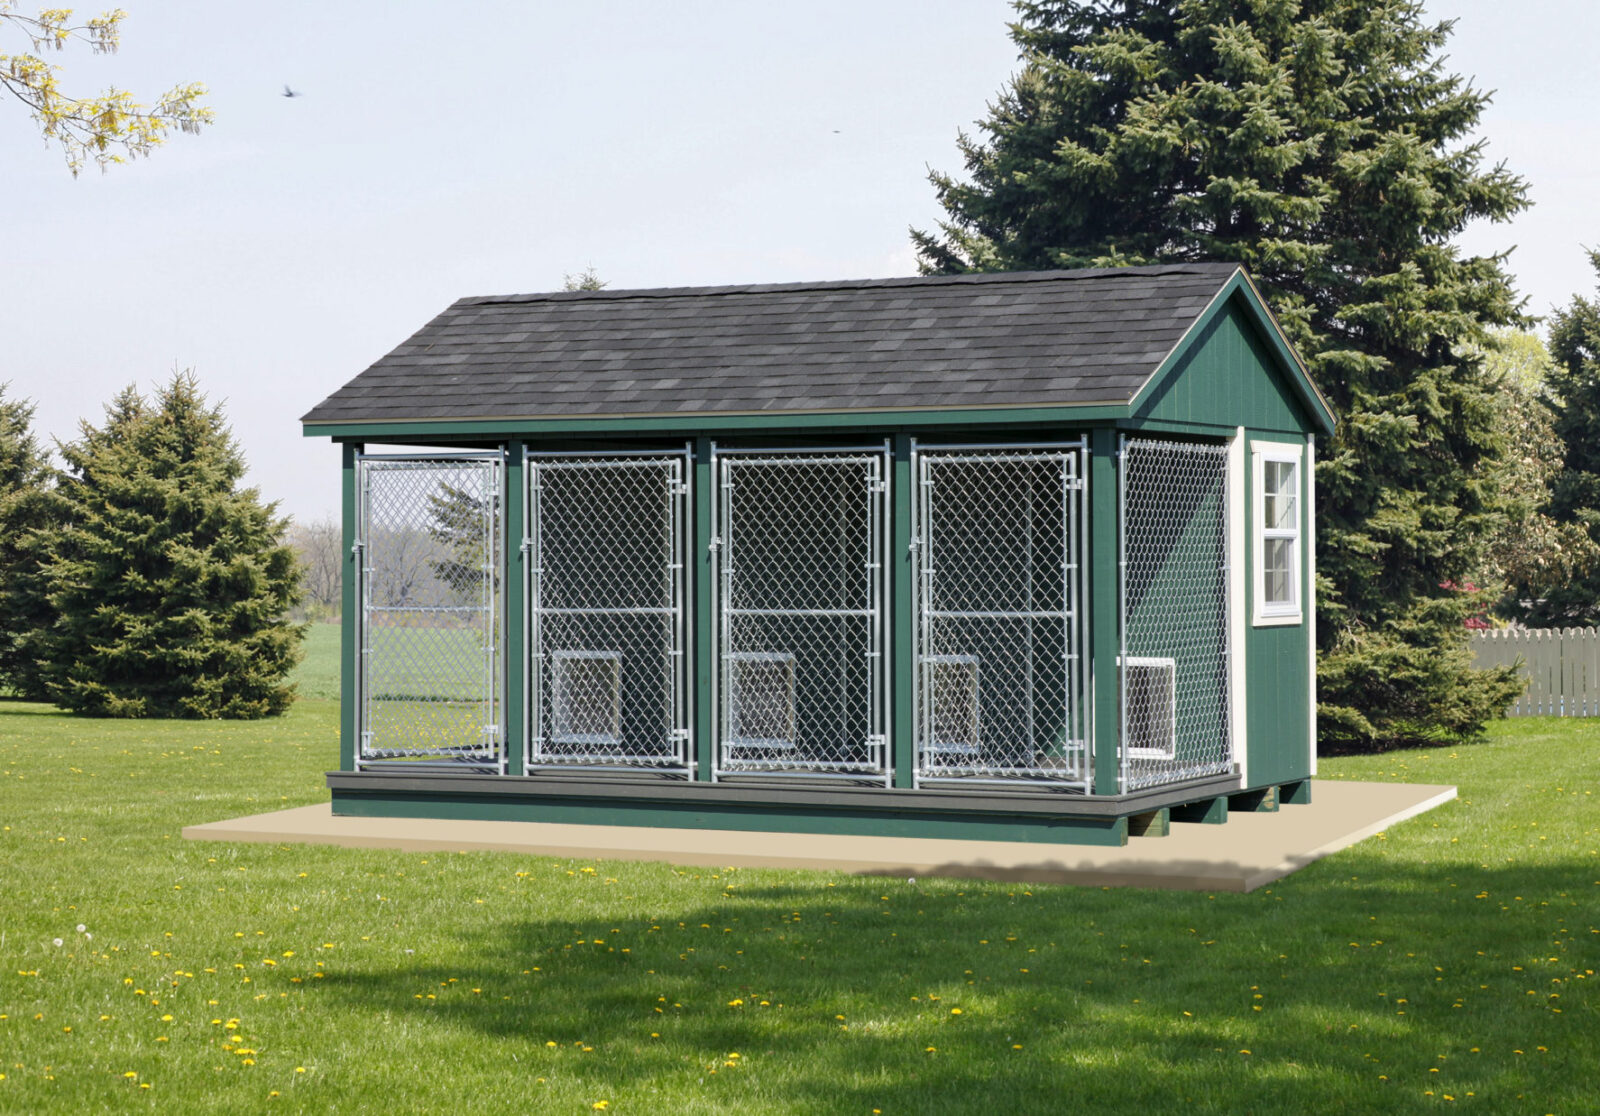 4 box puppy kennels